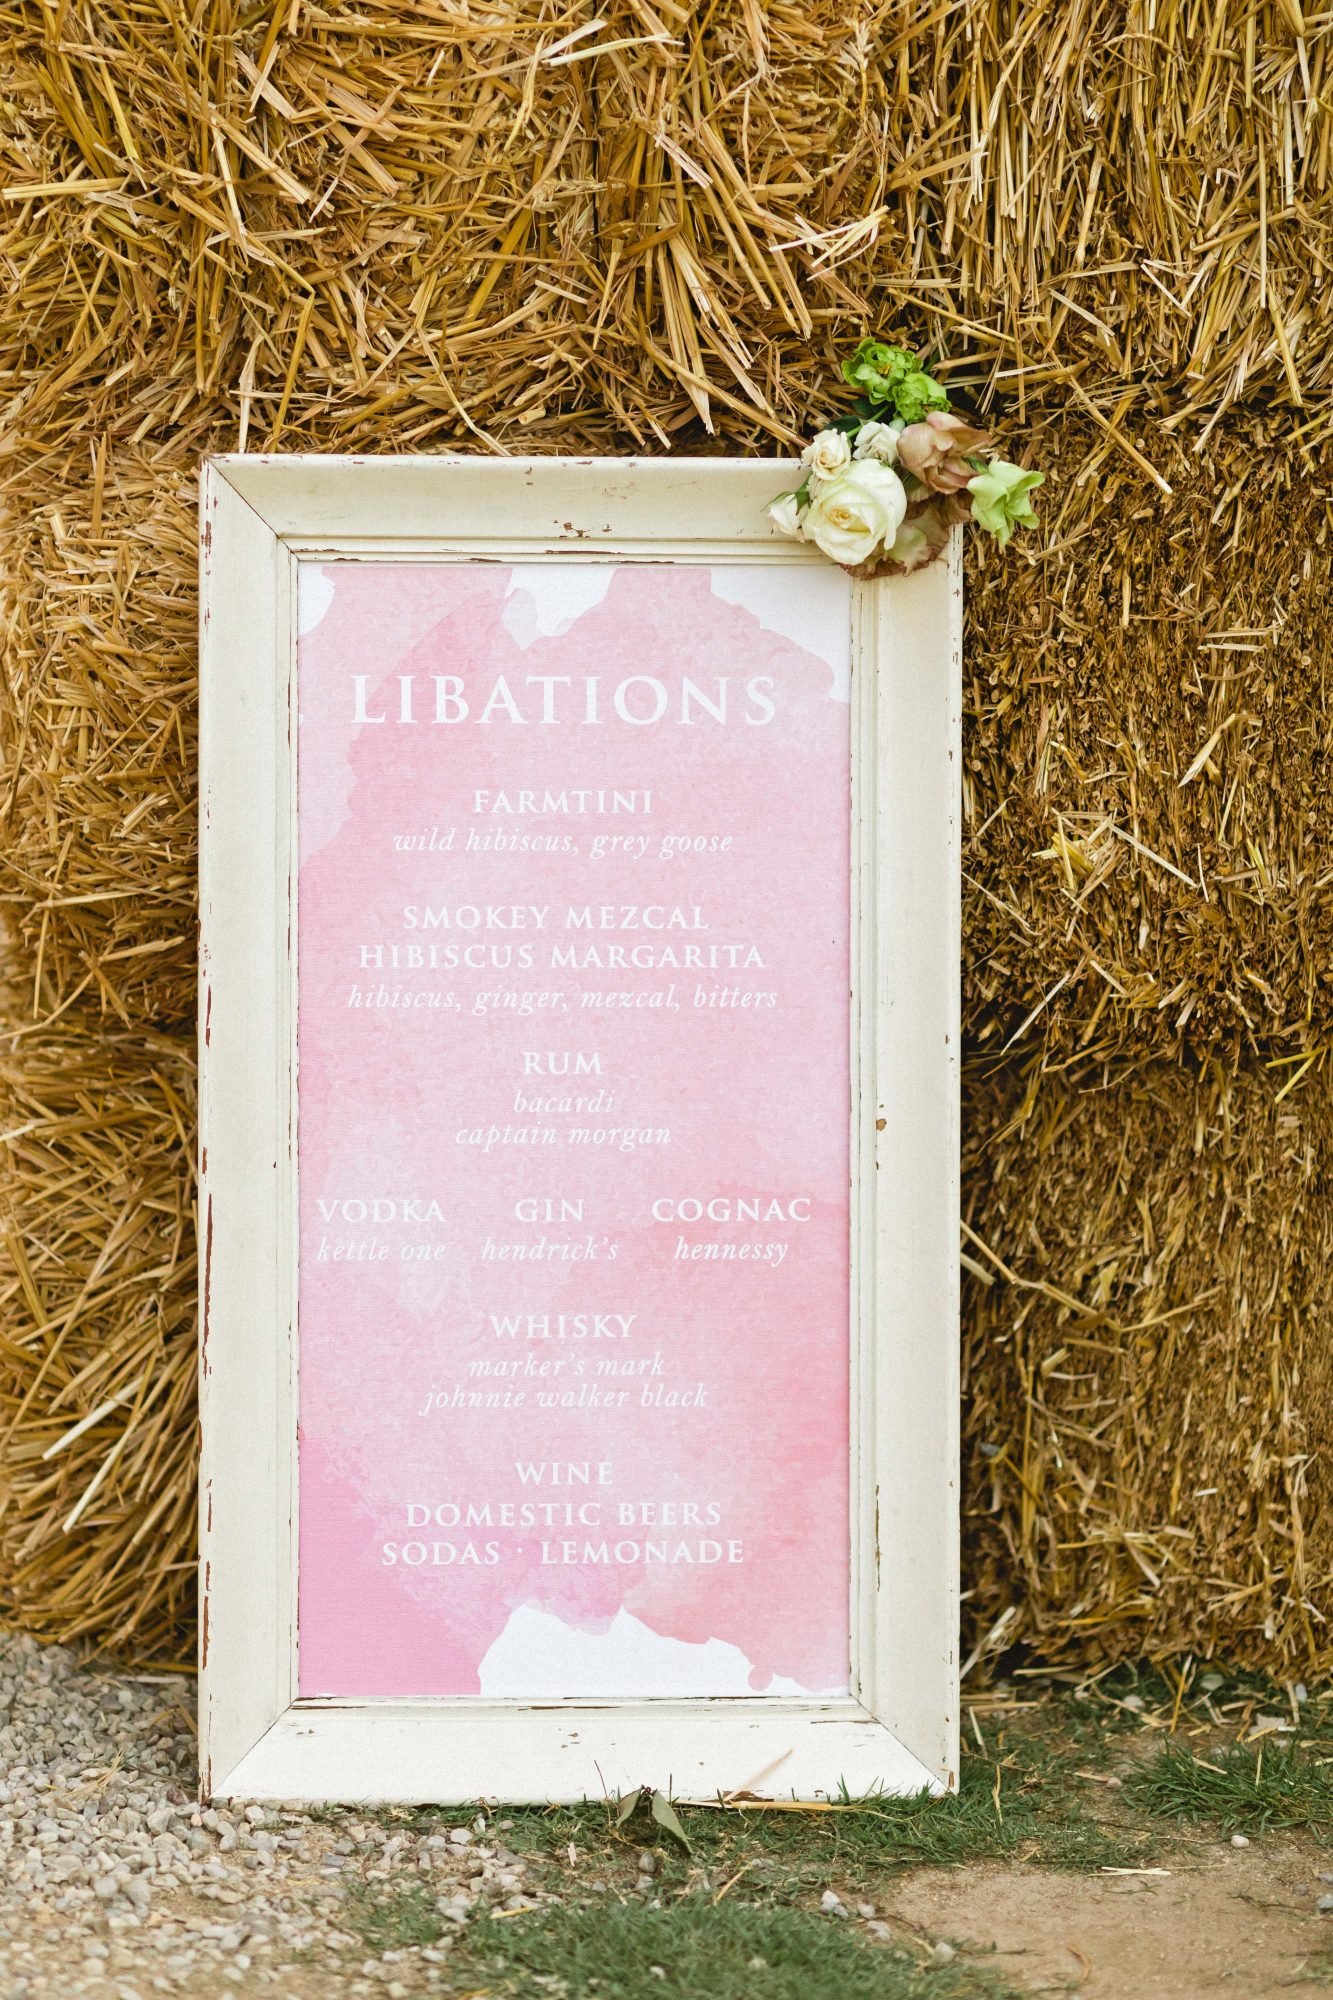 brittany craig wedding cocktails signage